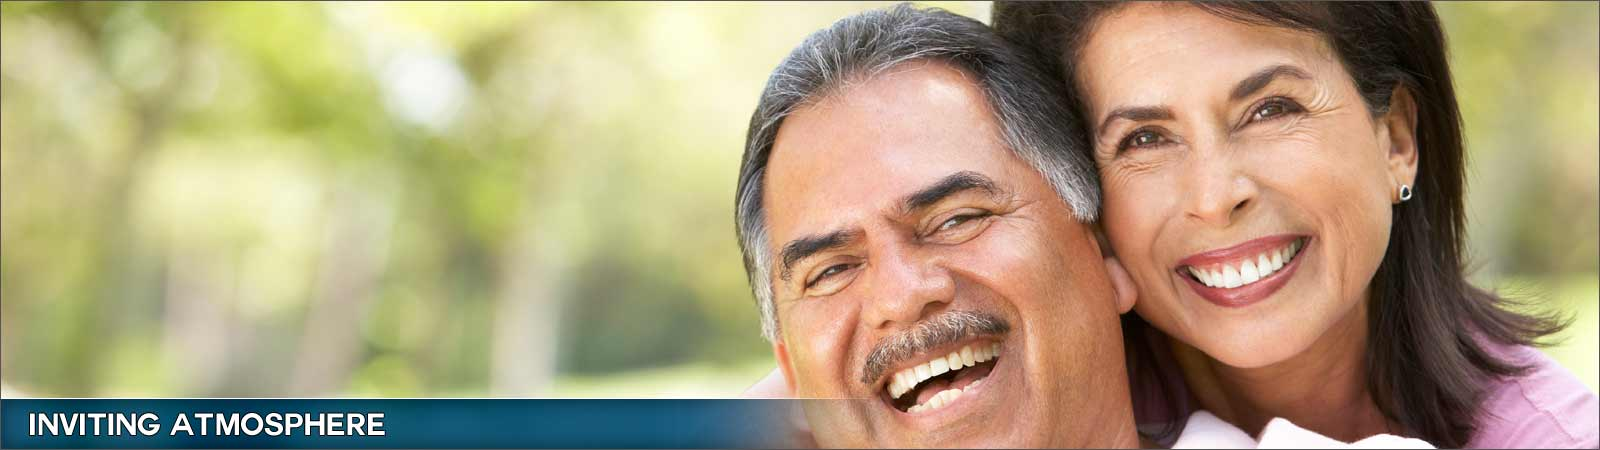 Terry Family Dentistry - Ettrick, VA, in South Chesterfield County